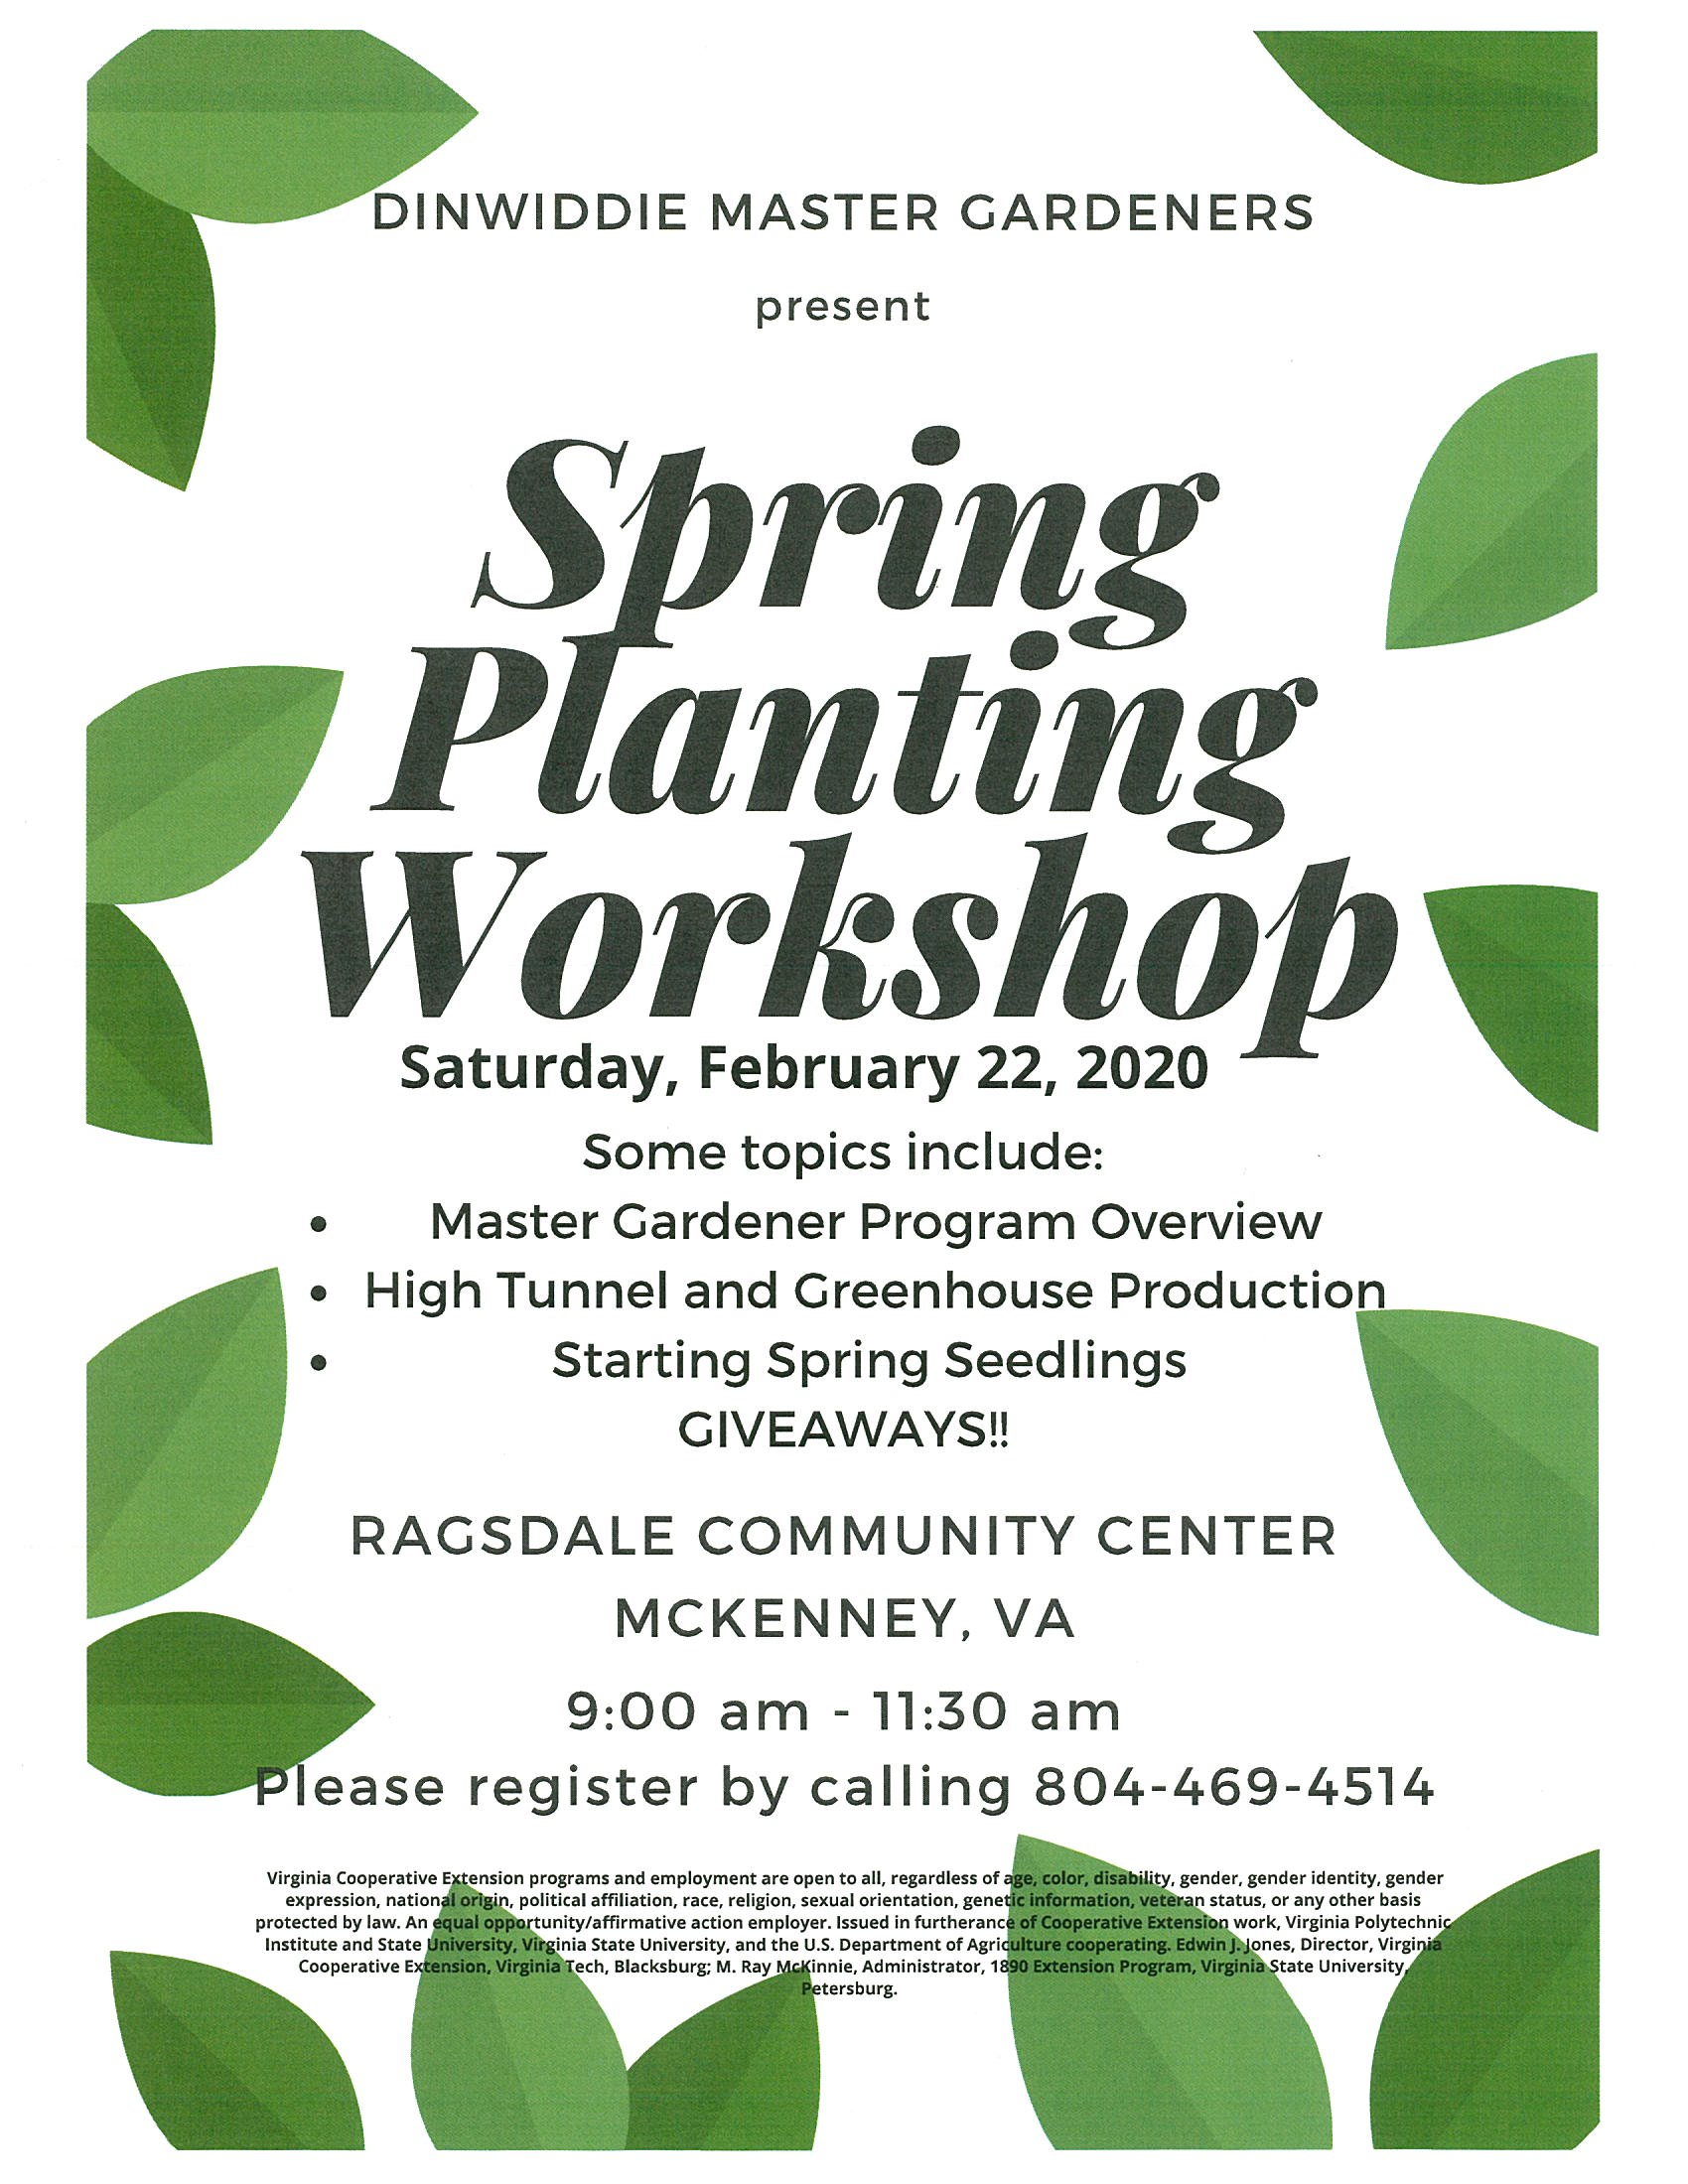 Spring Planting Workshop Flyer